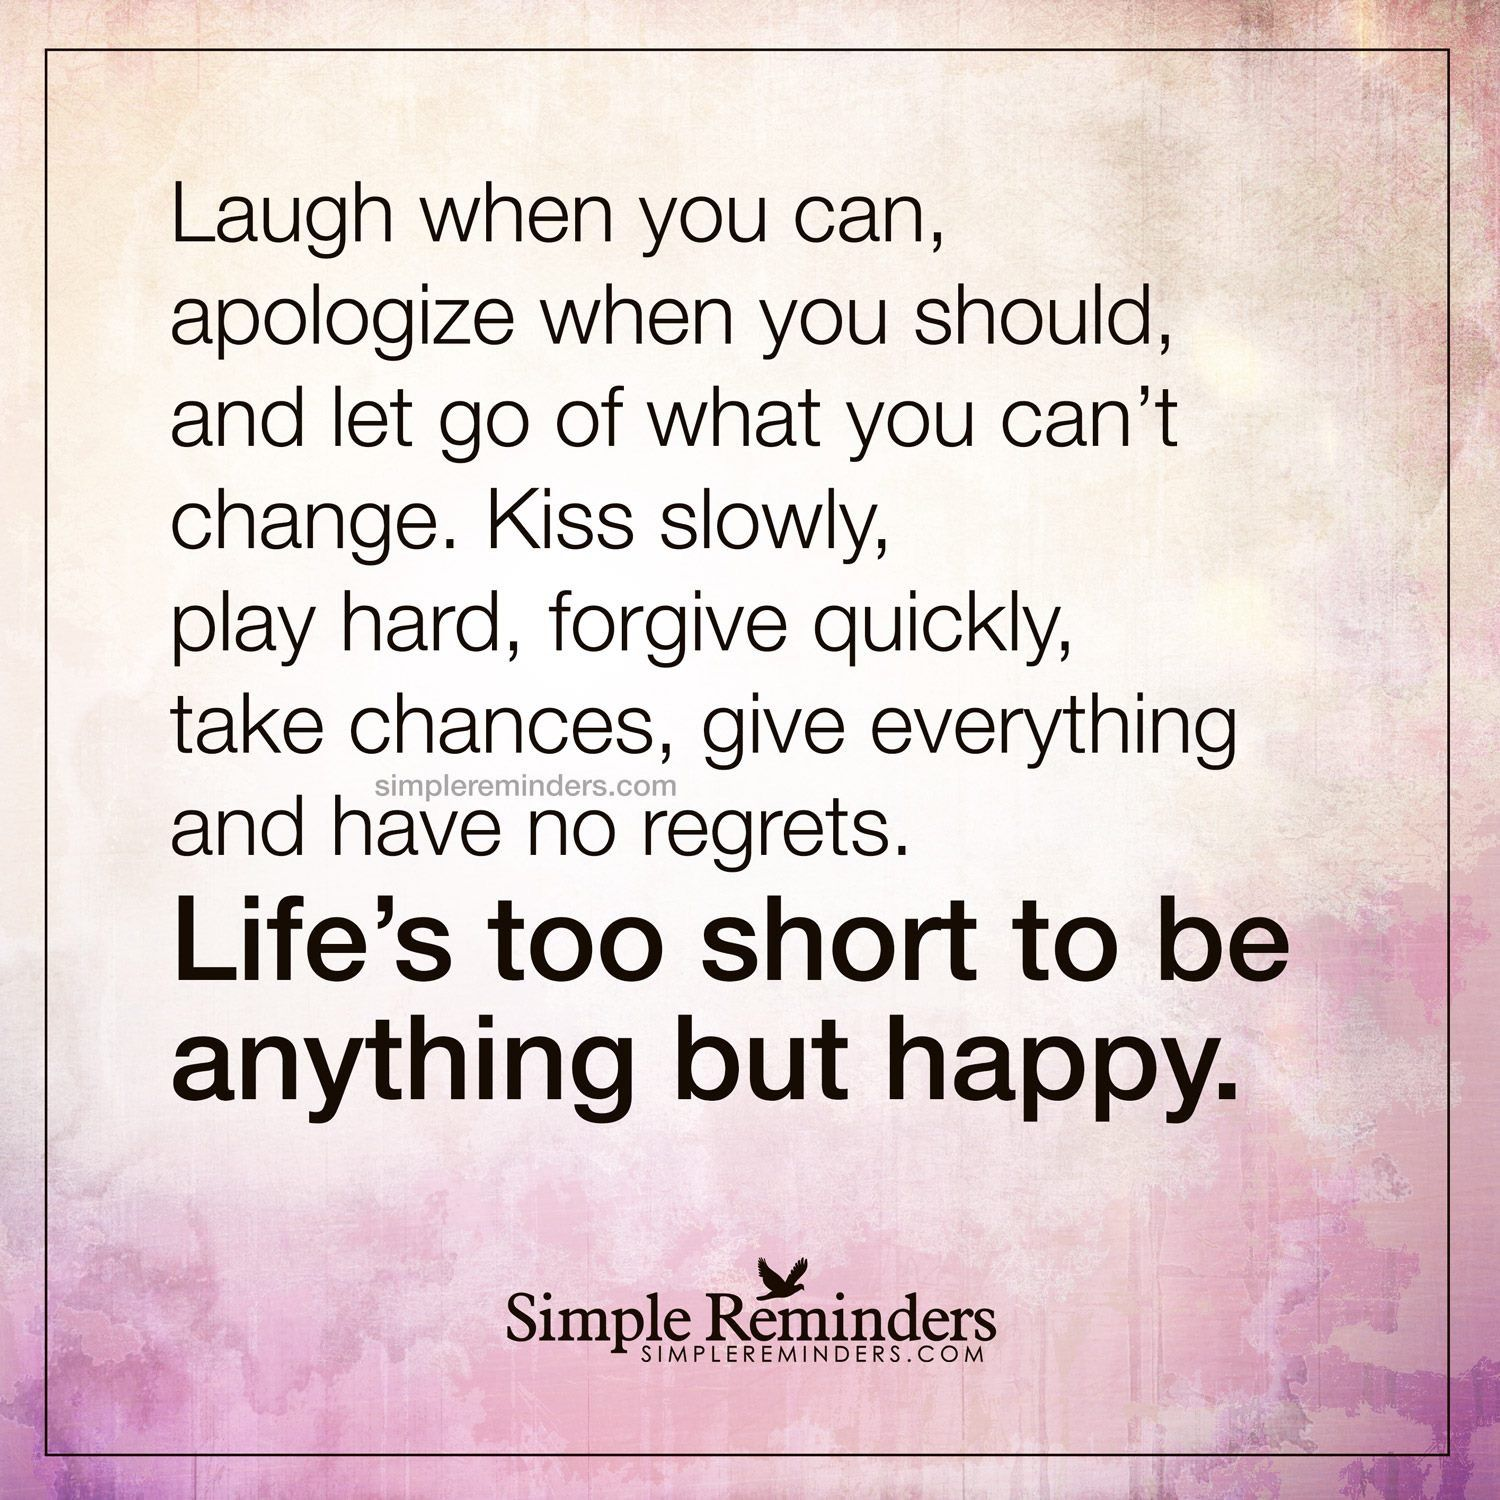 Favorite Quote About Life Pinliz Grover On Well Said  Pinterest